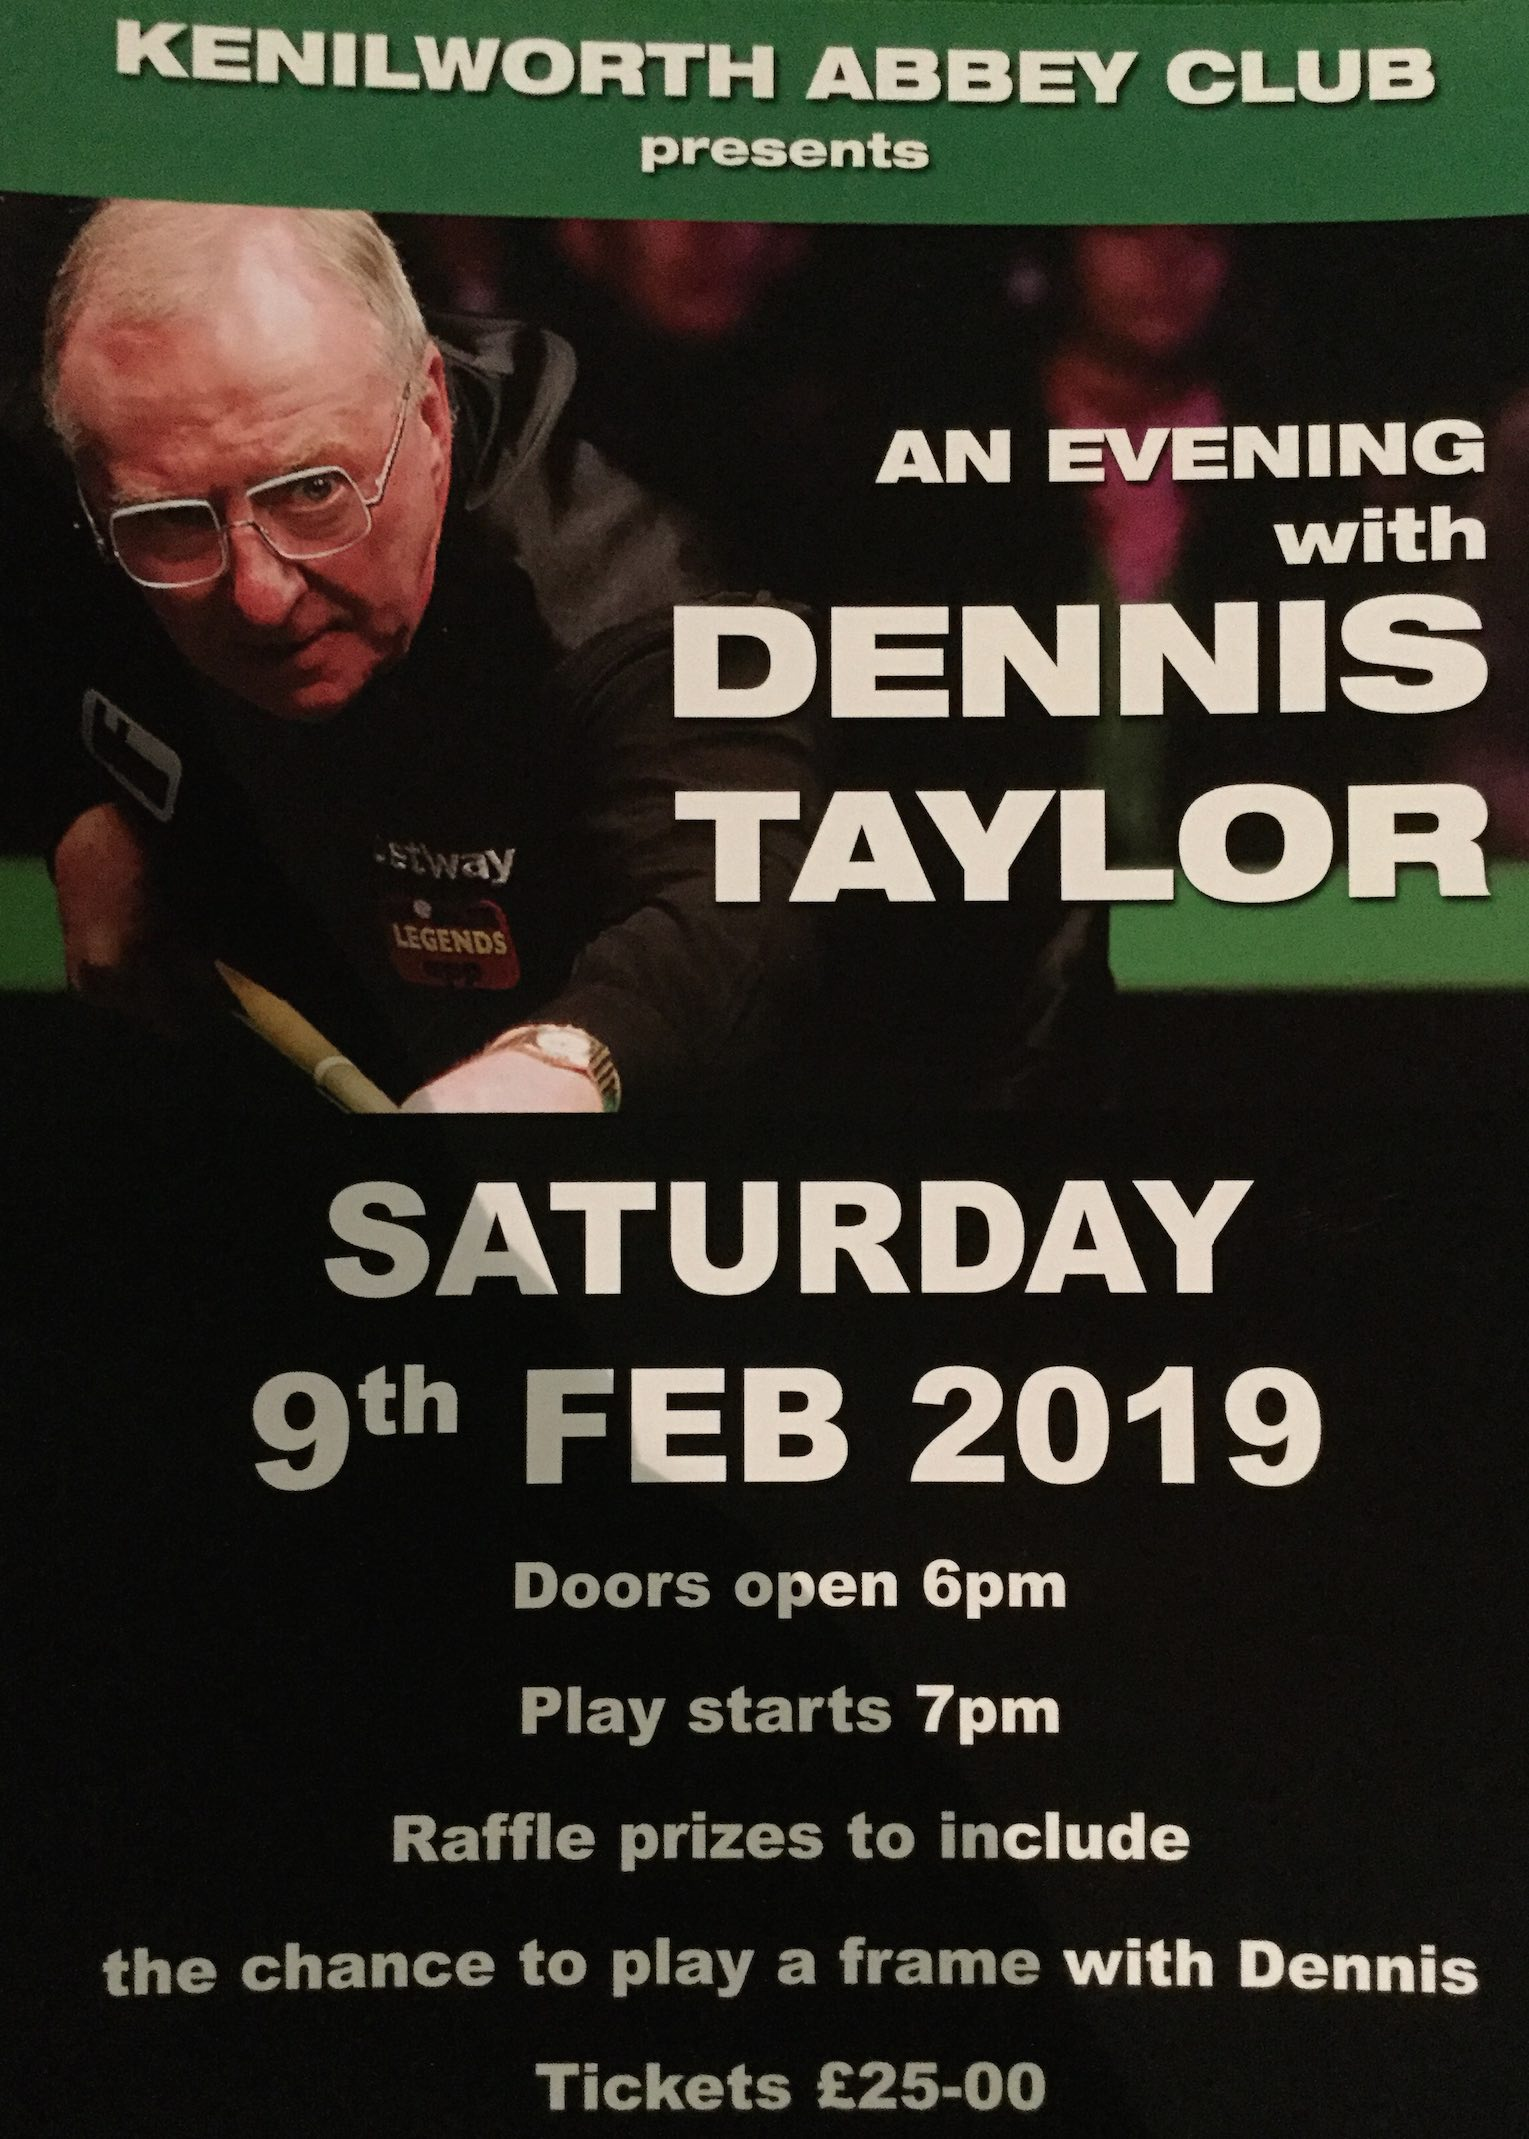 Contact the Kenilworth Abbey Club